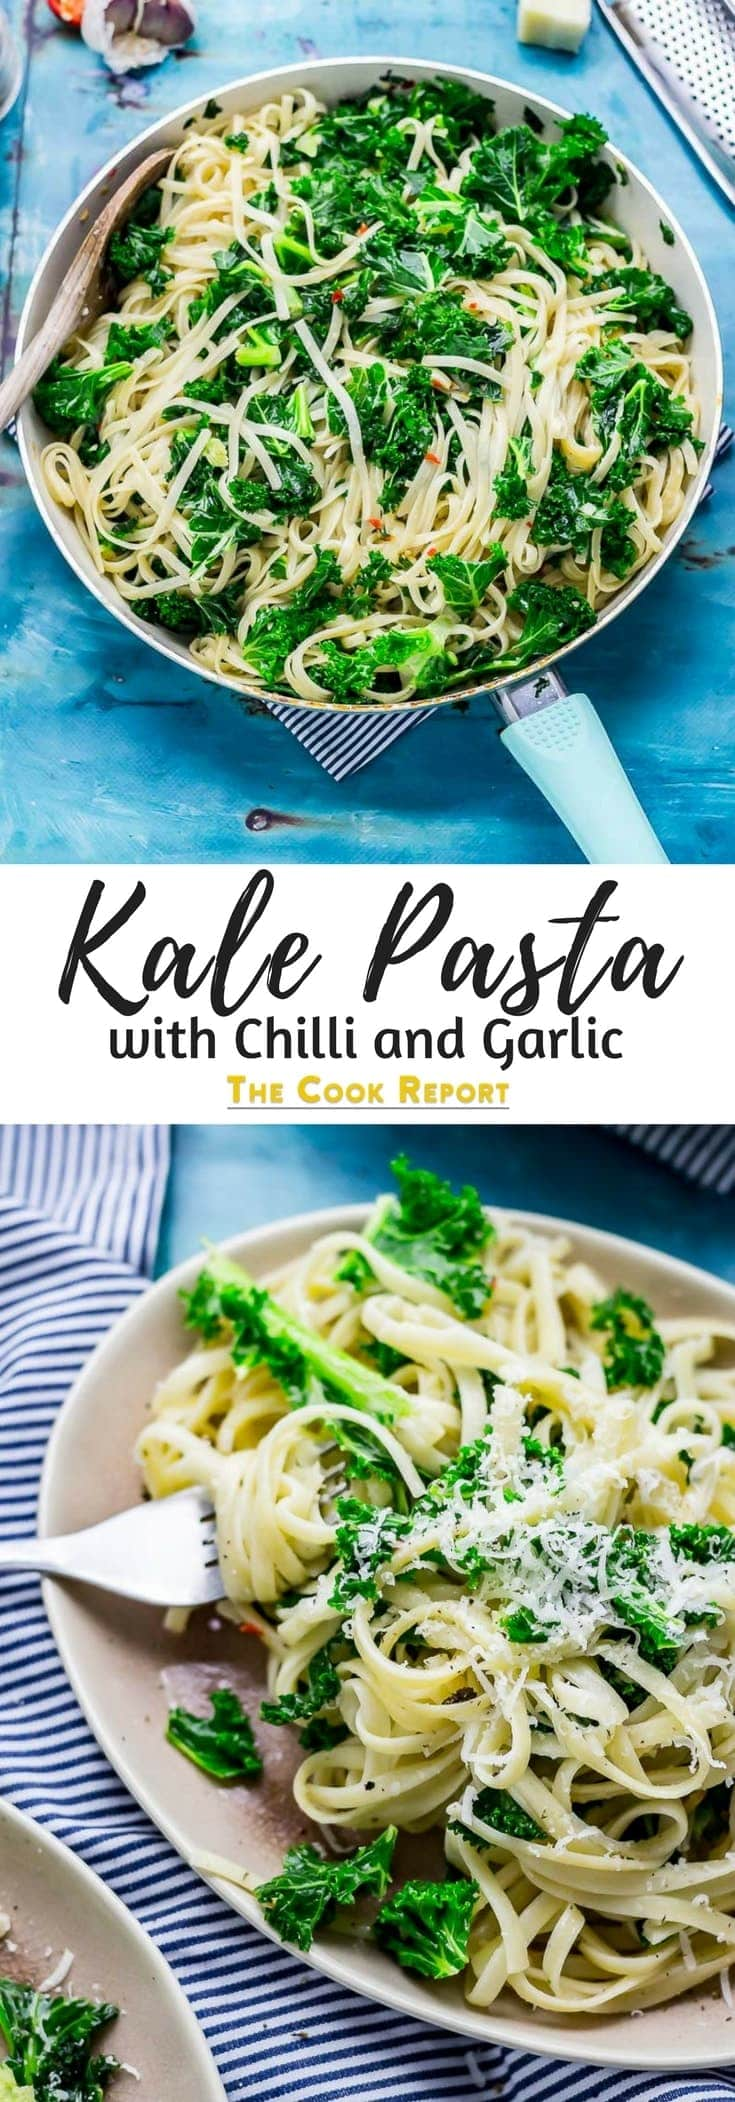 This super simple kale pasta recipe with heaps of chilli and garlic is the perfect weeknight meal. Have dinner on the table in the time it takes to boil some pasta! #pasta #kale #chilli #garlic #weeknightdinner #easydinner #thecookreport